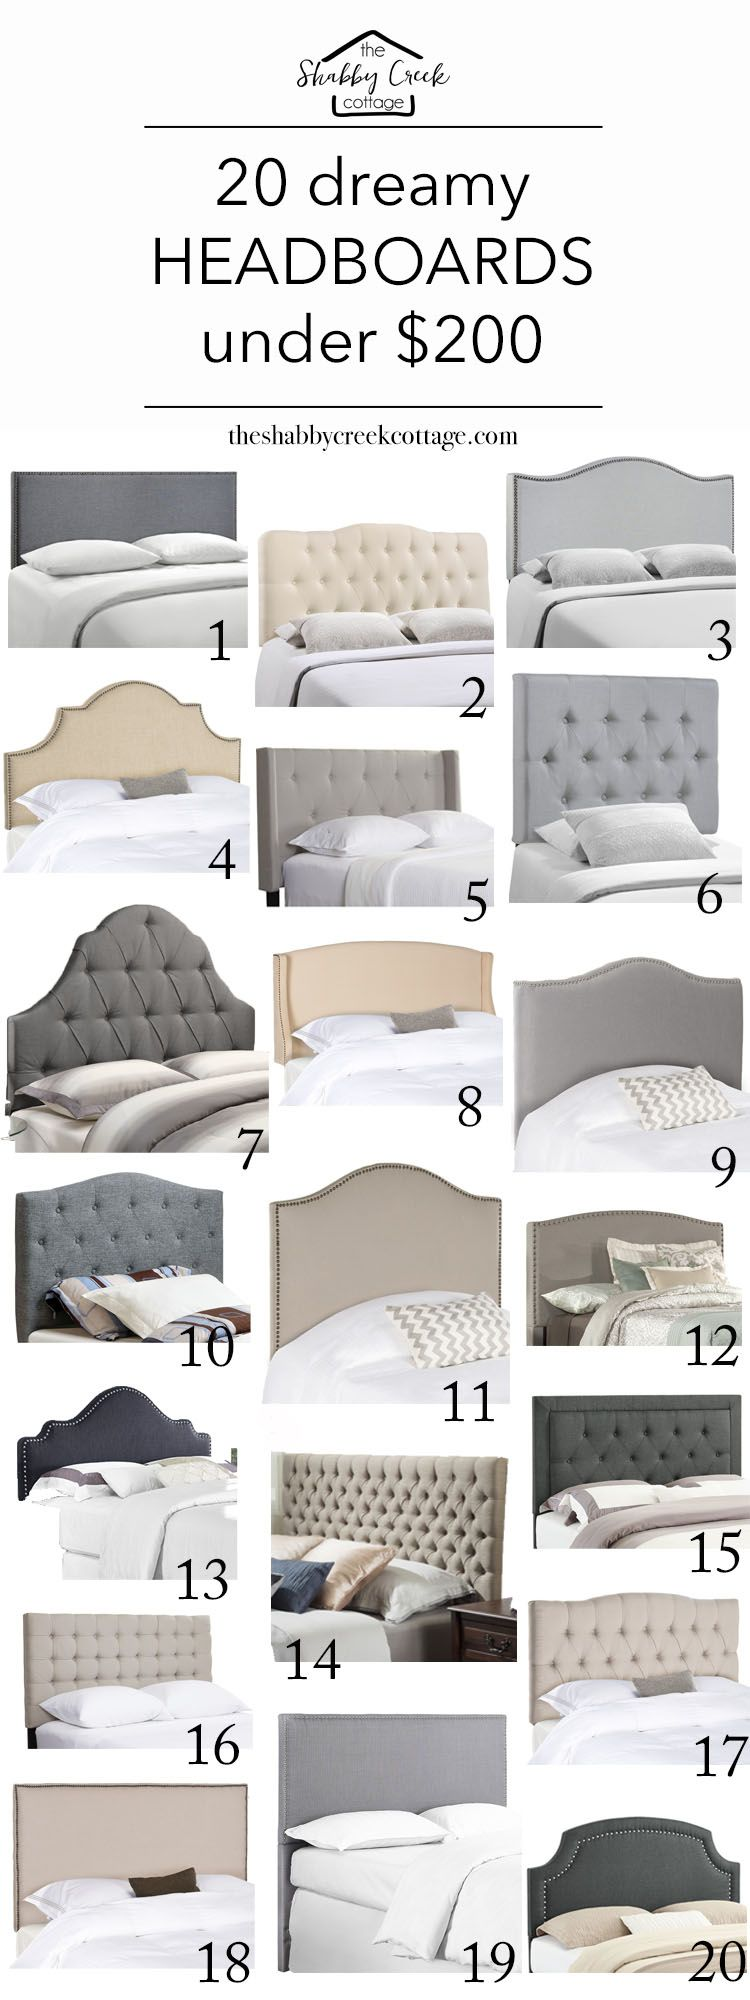 Love These Headboards Gorgeous And On Budget